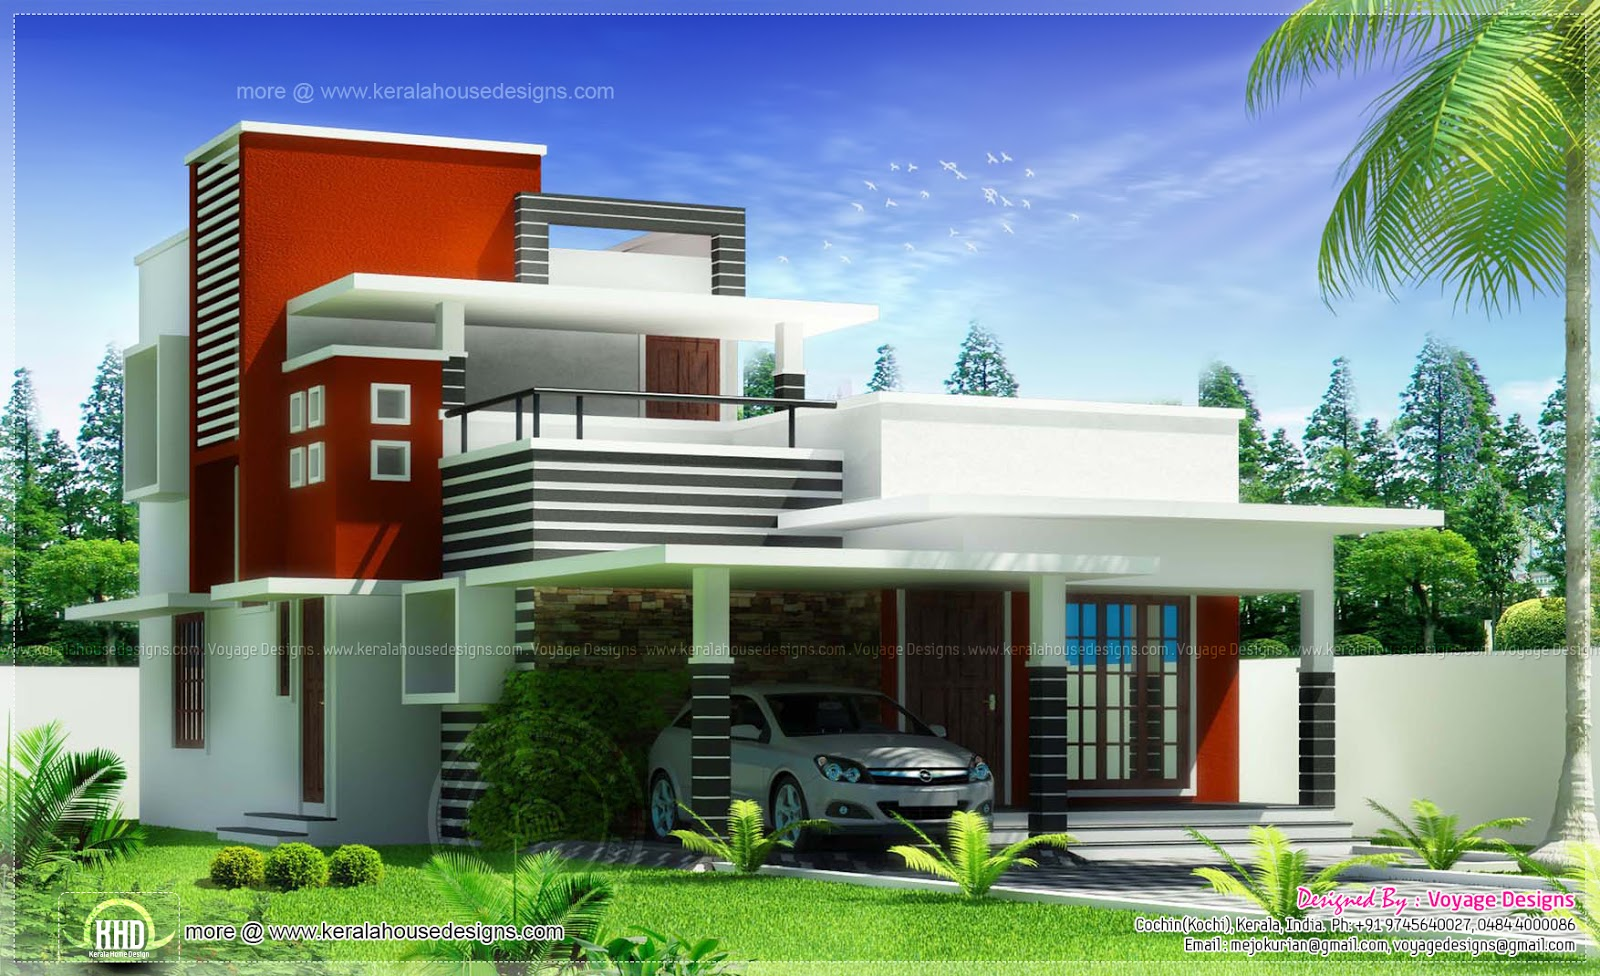 3 bed room contemporary style house kerala home design On contemporary style kerala homes